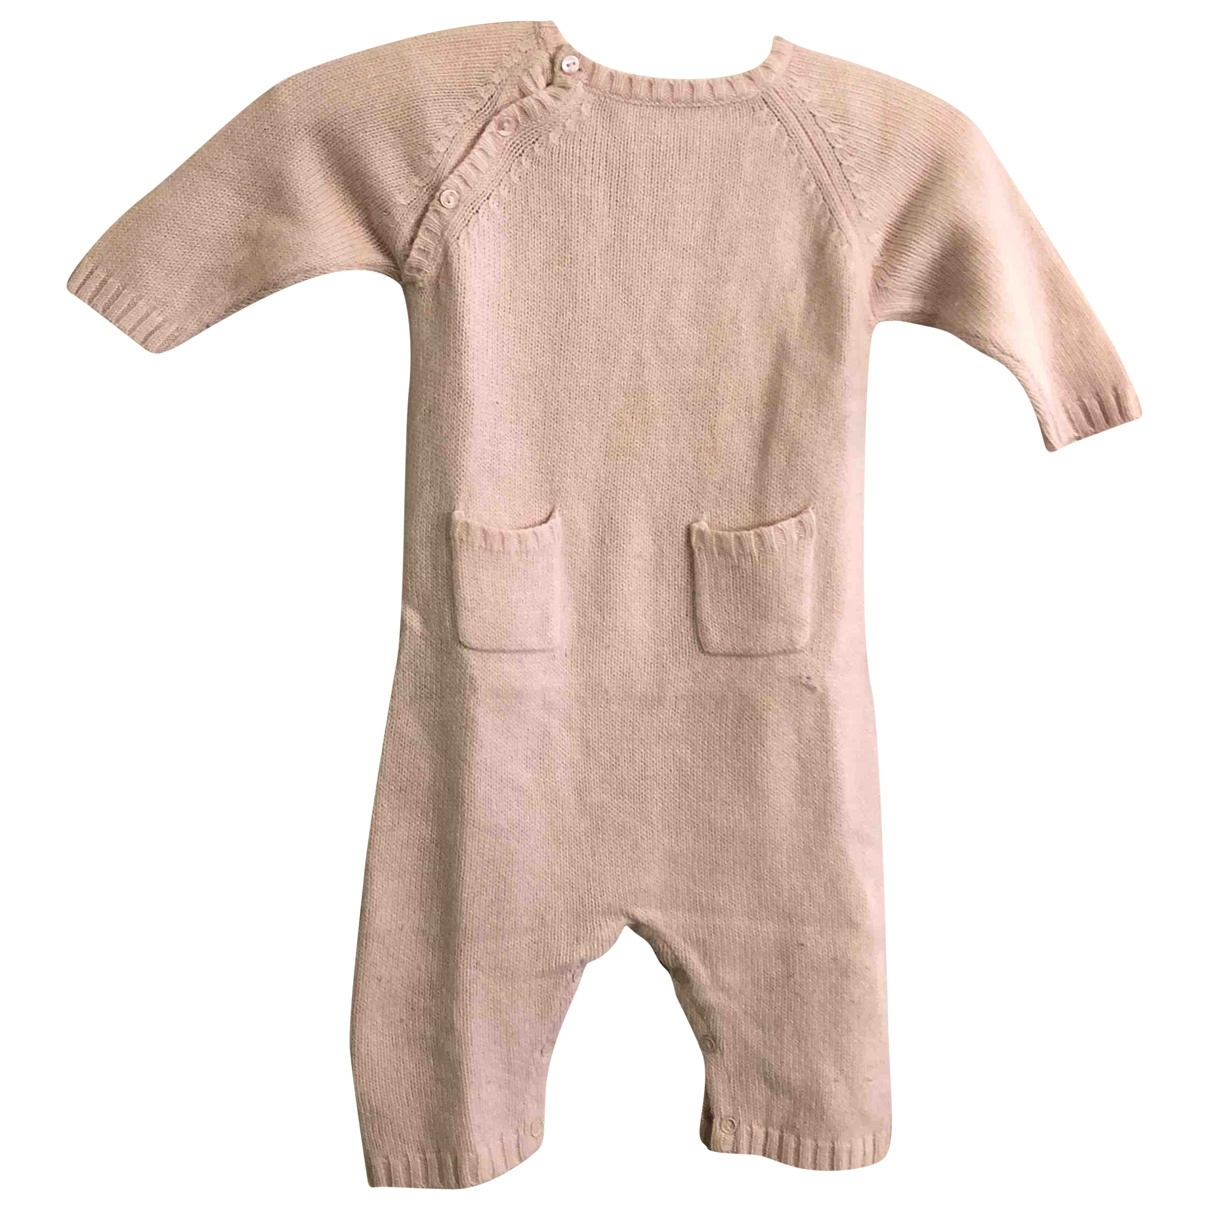 Bonpoint \N Pink Cashmere Outfits for Kids 6 months - up to 67cm